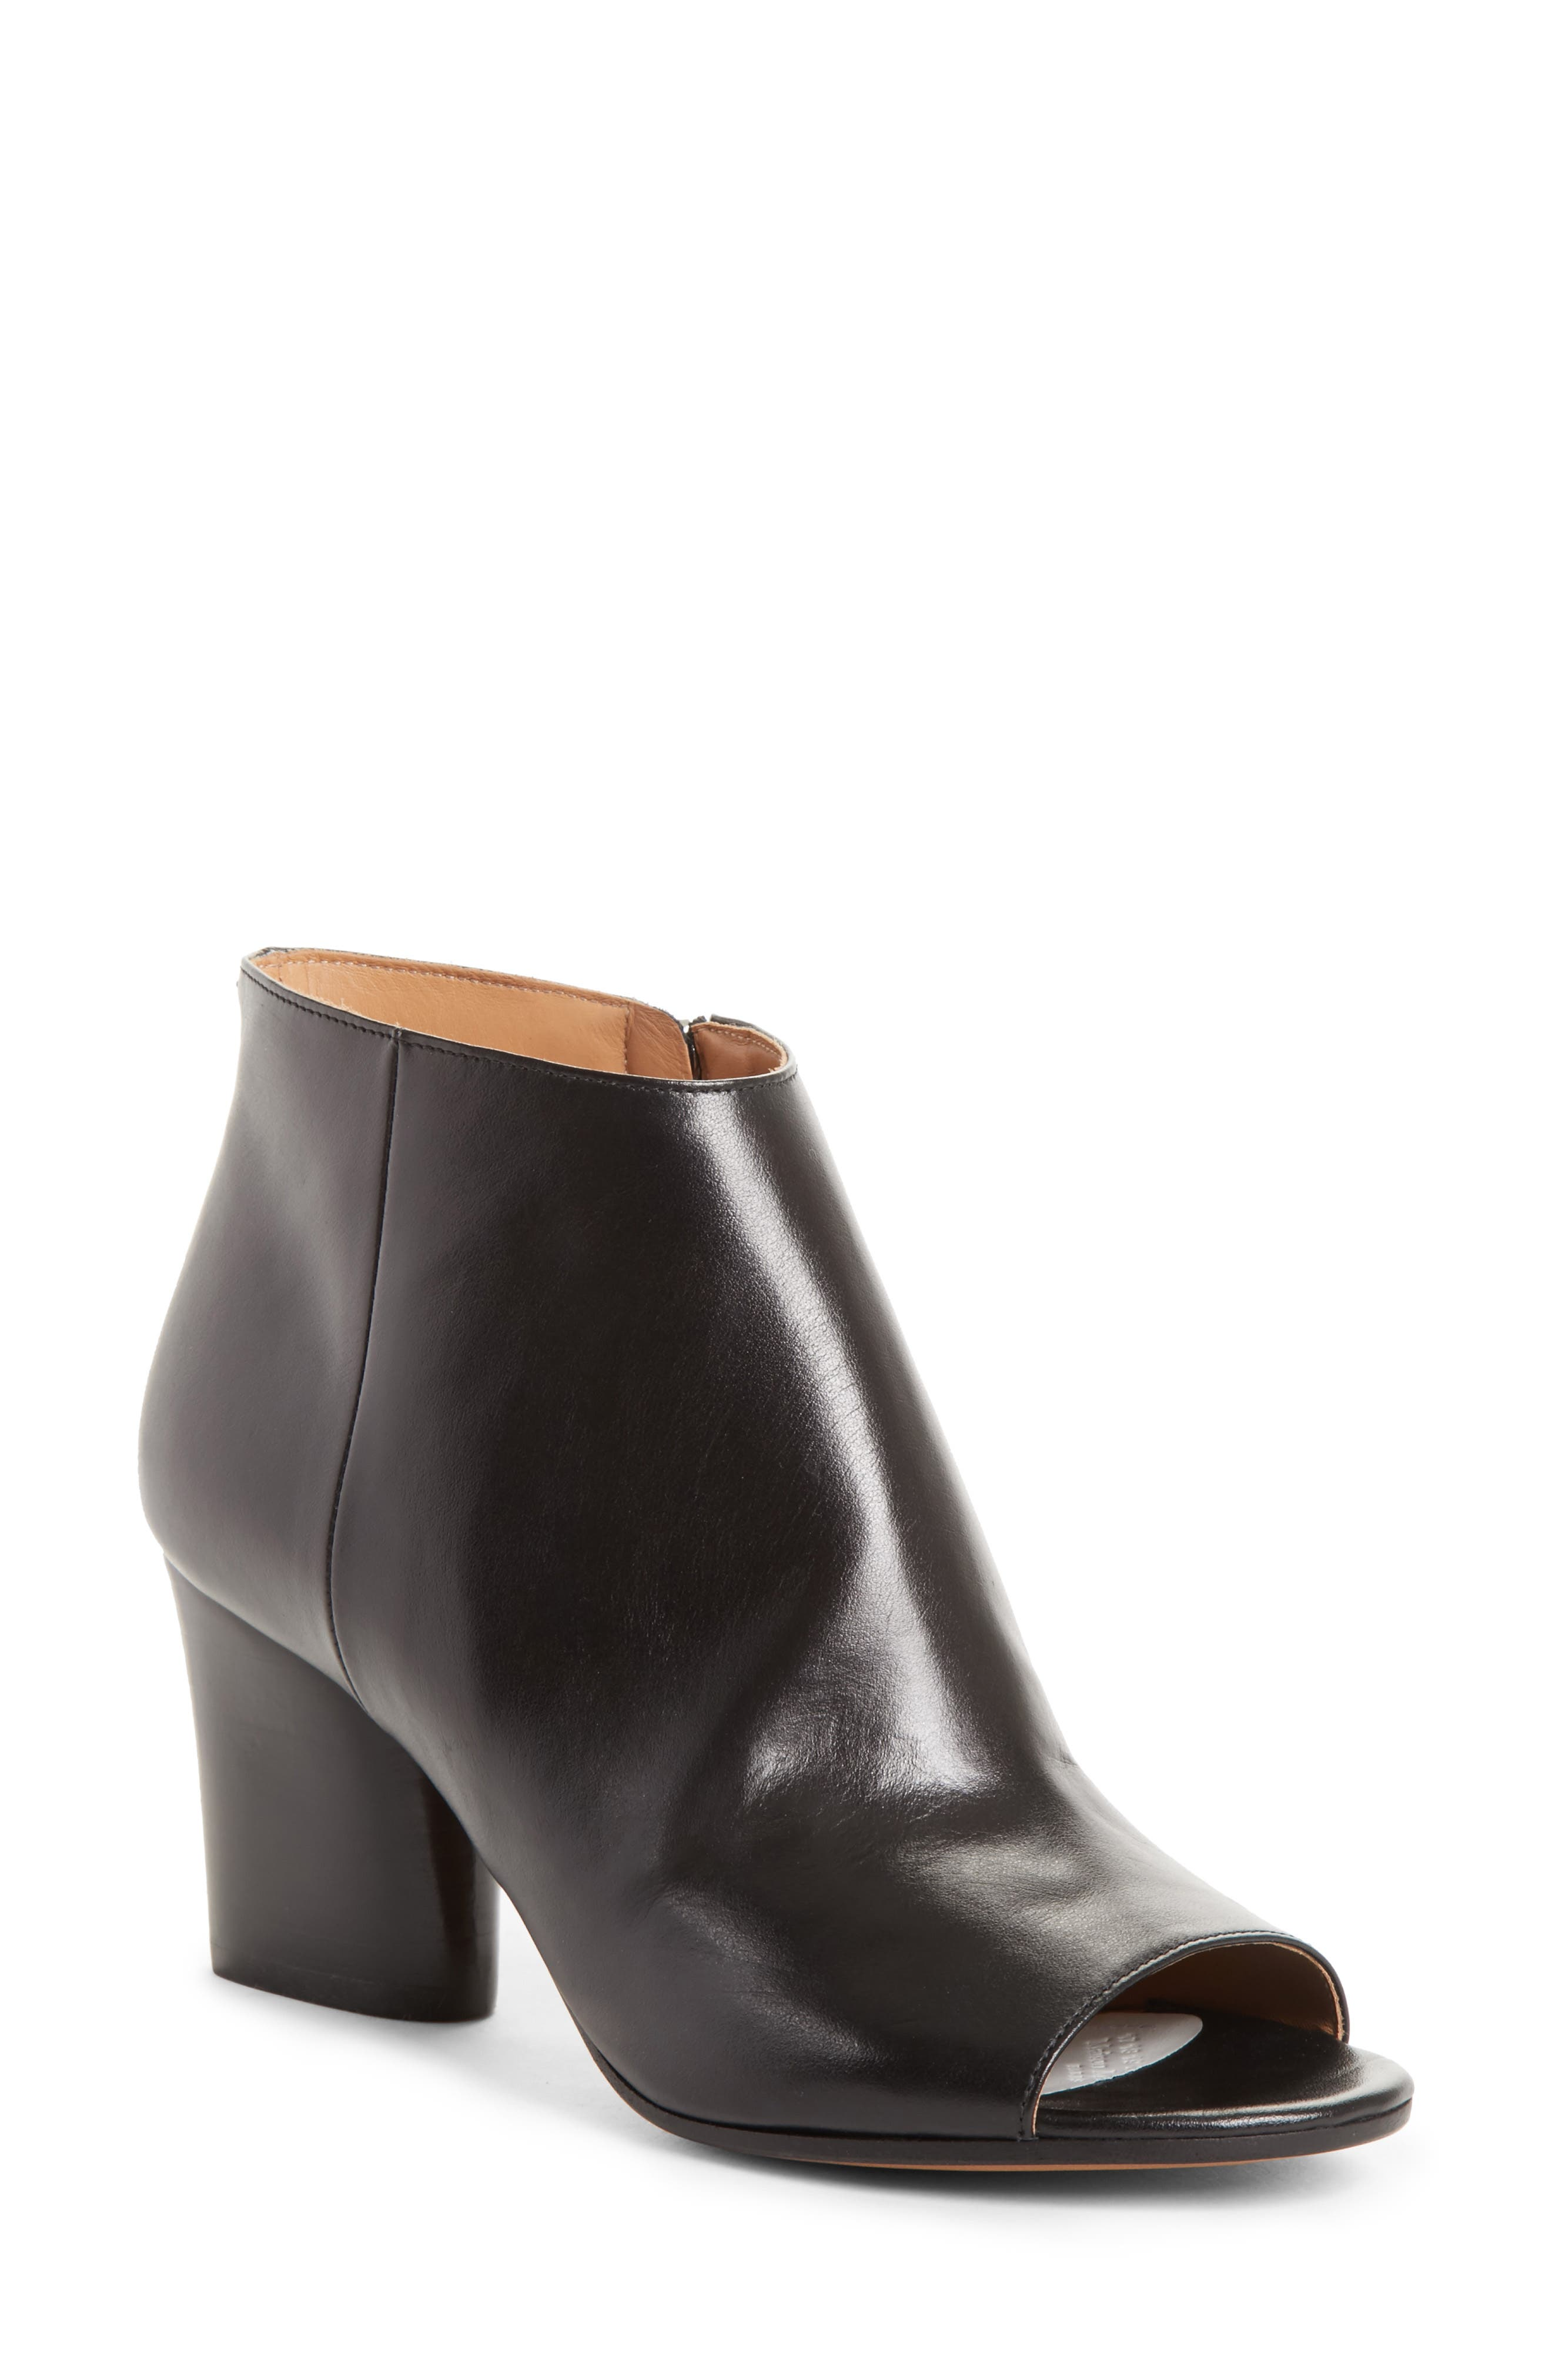 Open Toe Ankle Boot,                             Main thumbnail 1, color,                             001